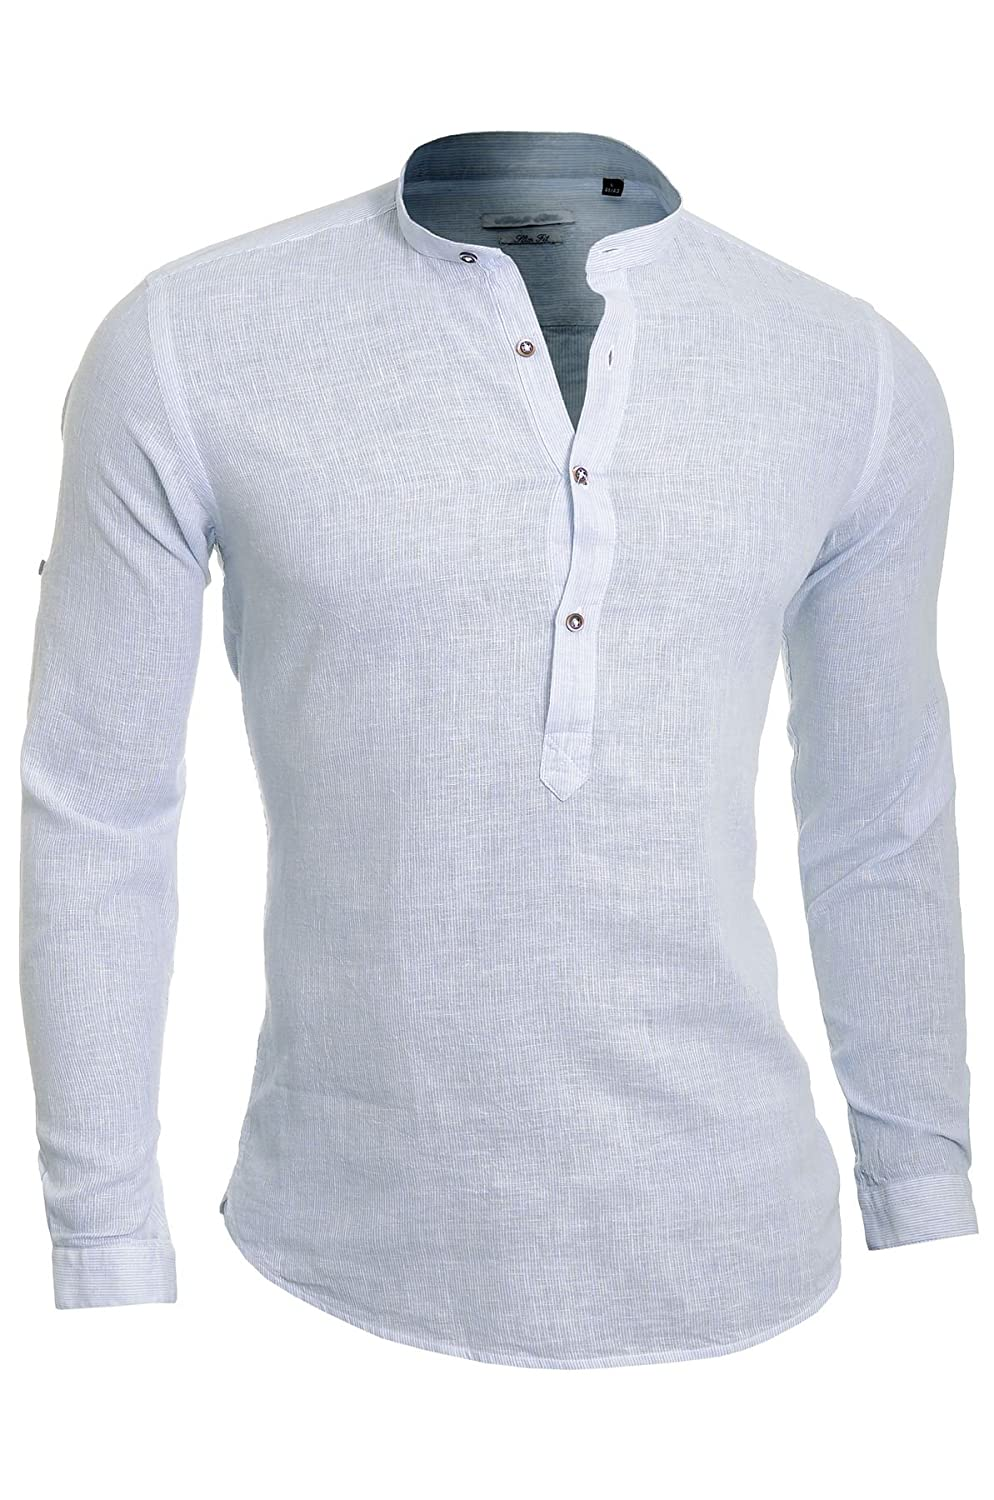 Stand Collar Shirts Designs : D r fashion men s casual henley shirt grandad stand up collar